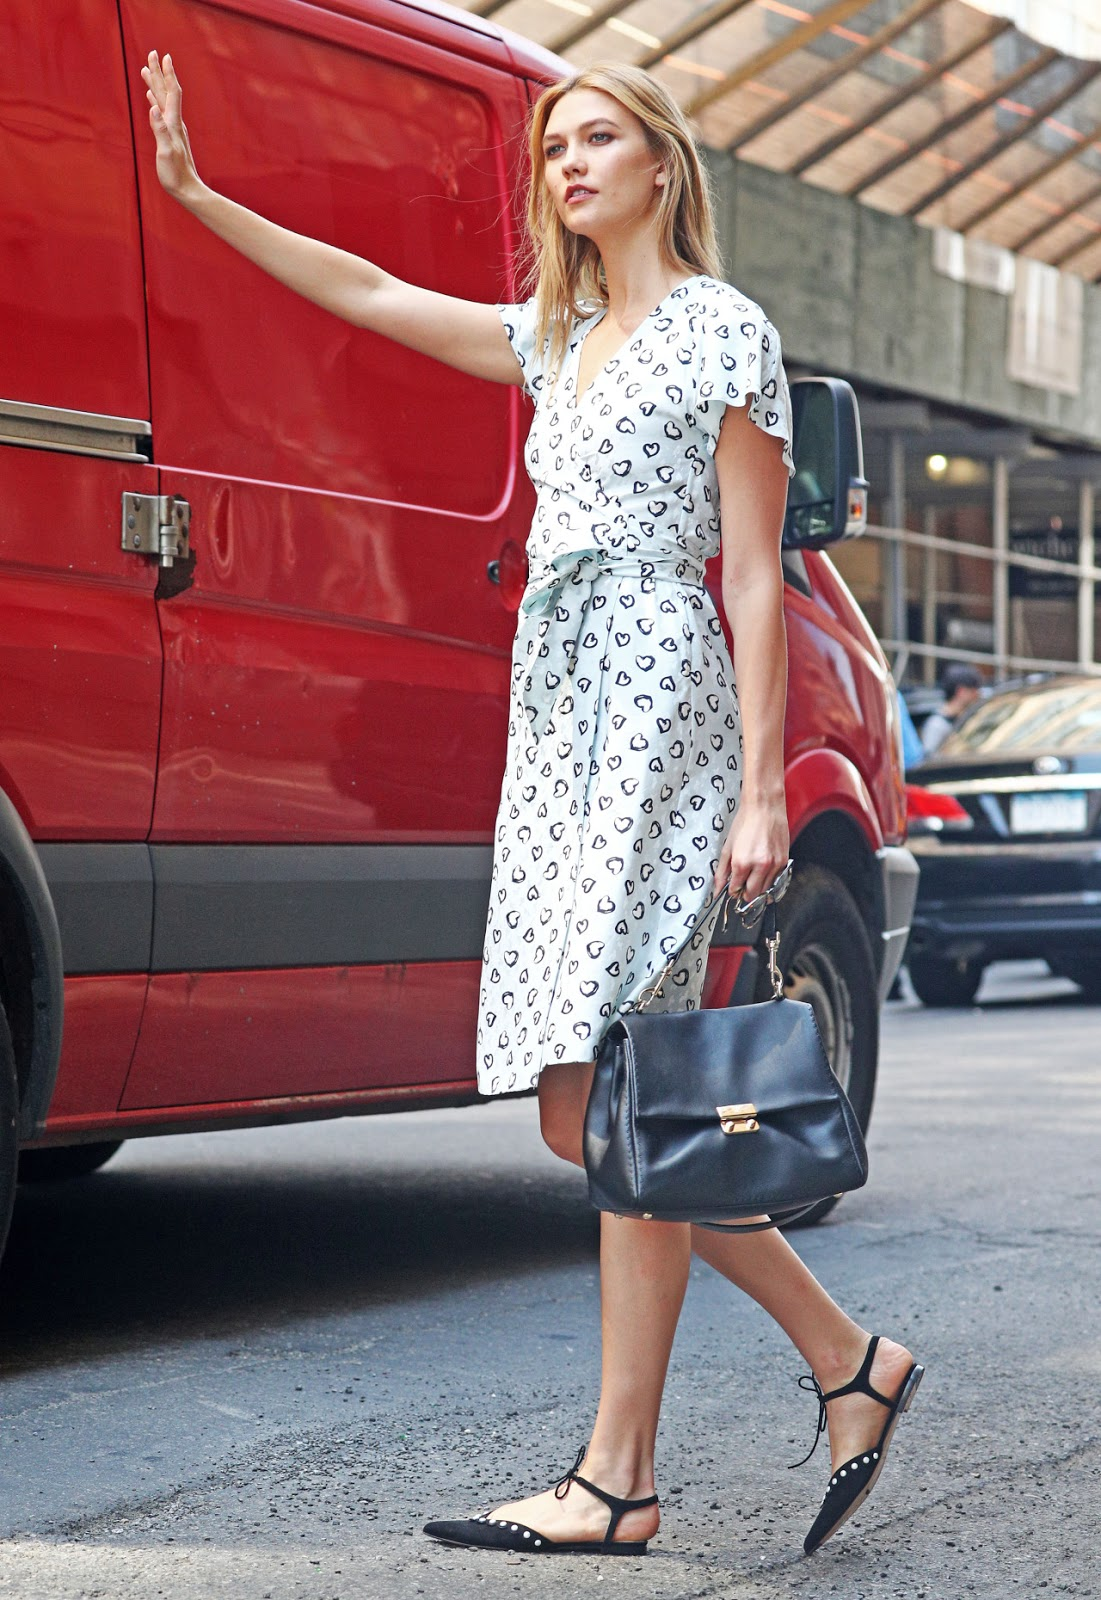 Karlie Kloss Wears Heart Print Dress in NYC